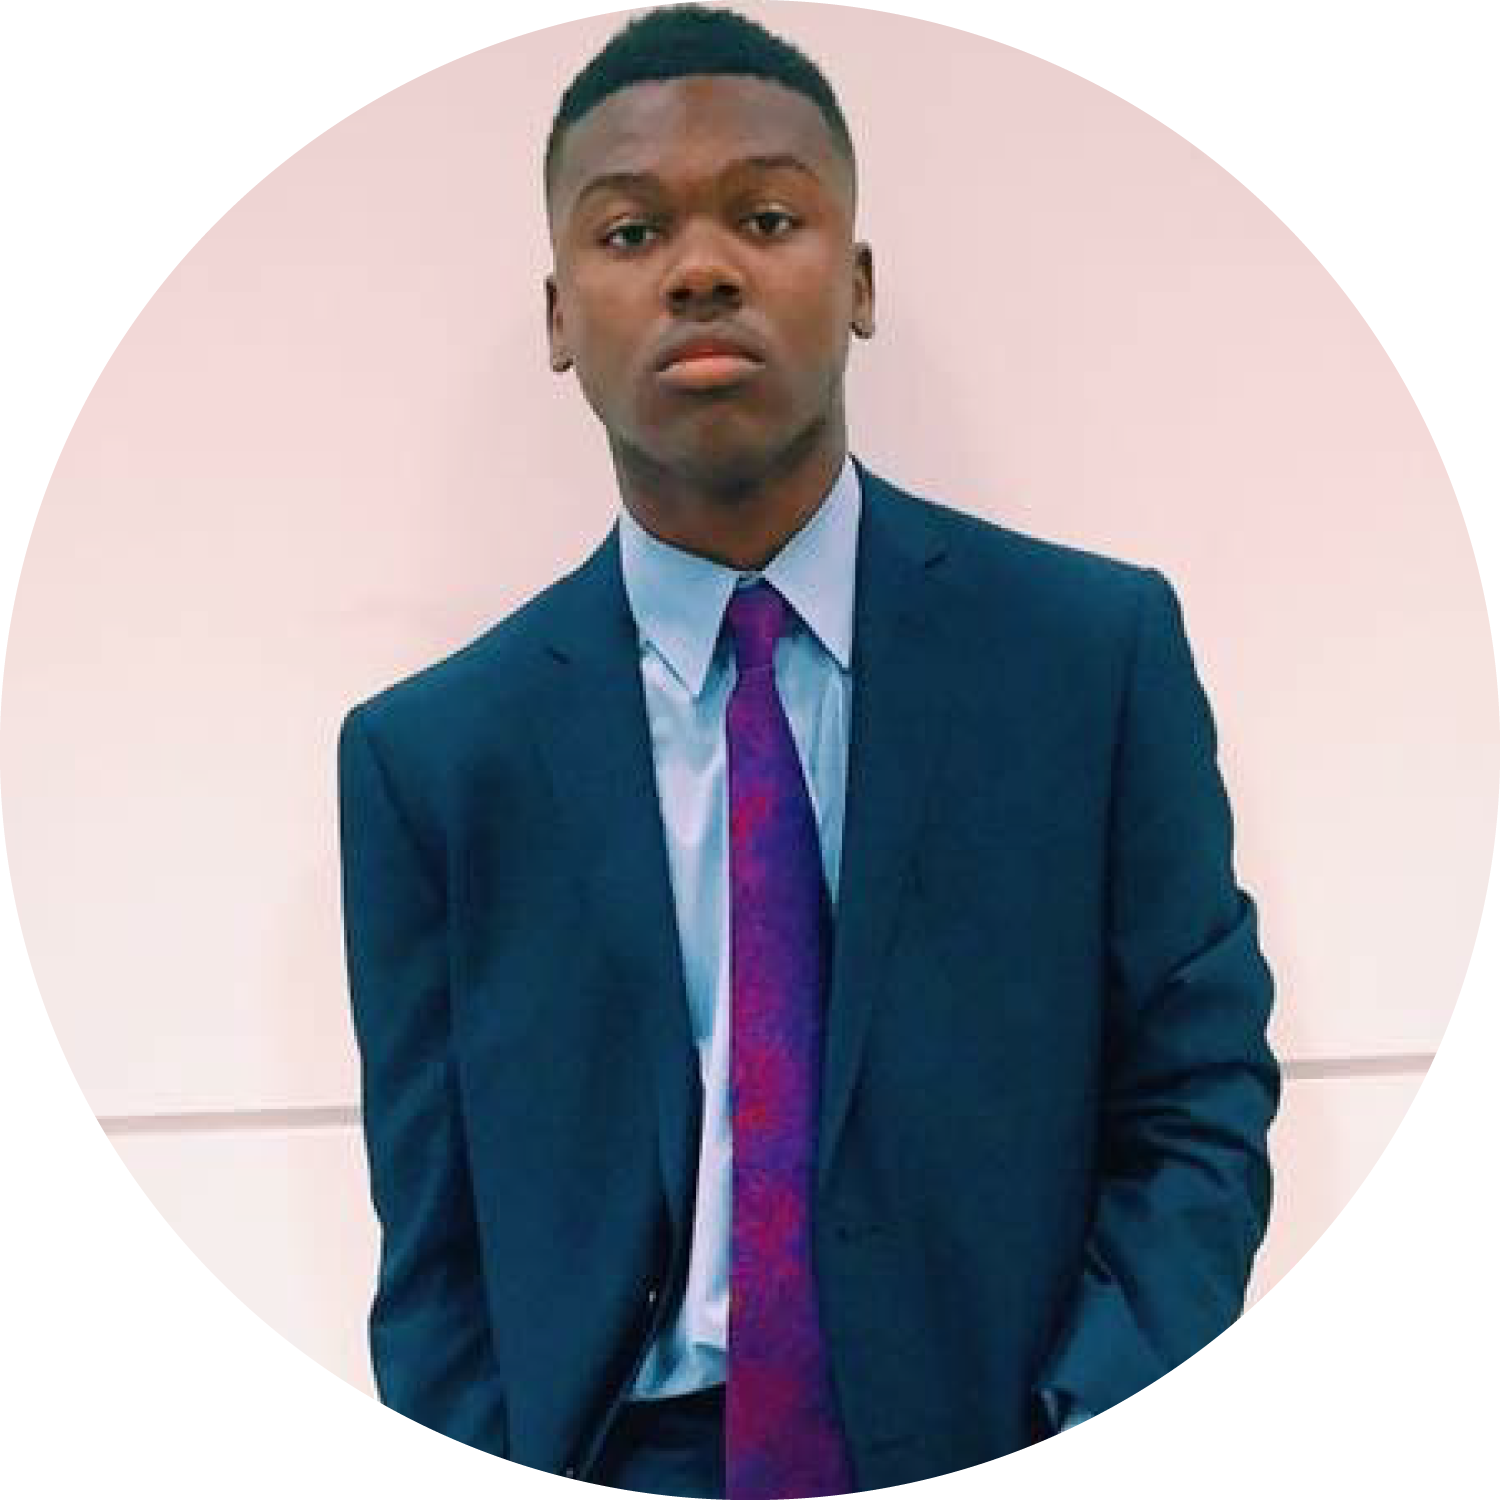 College Town_circular profile picture_Markell.png